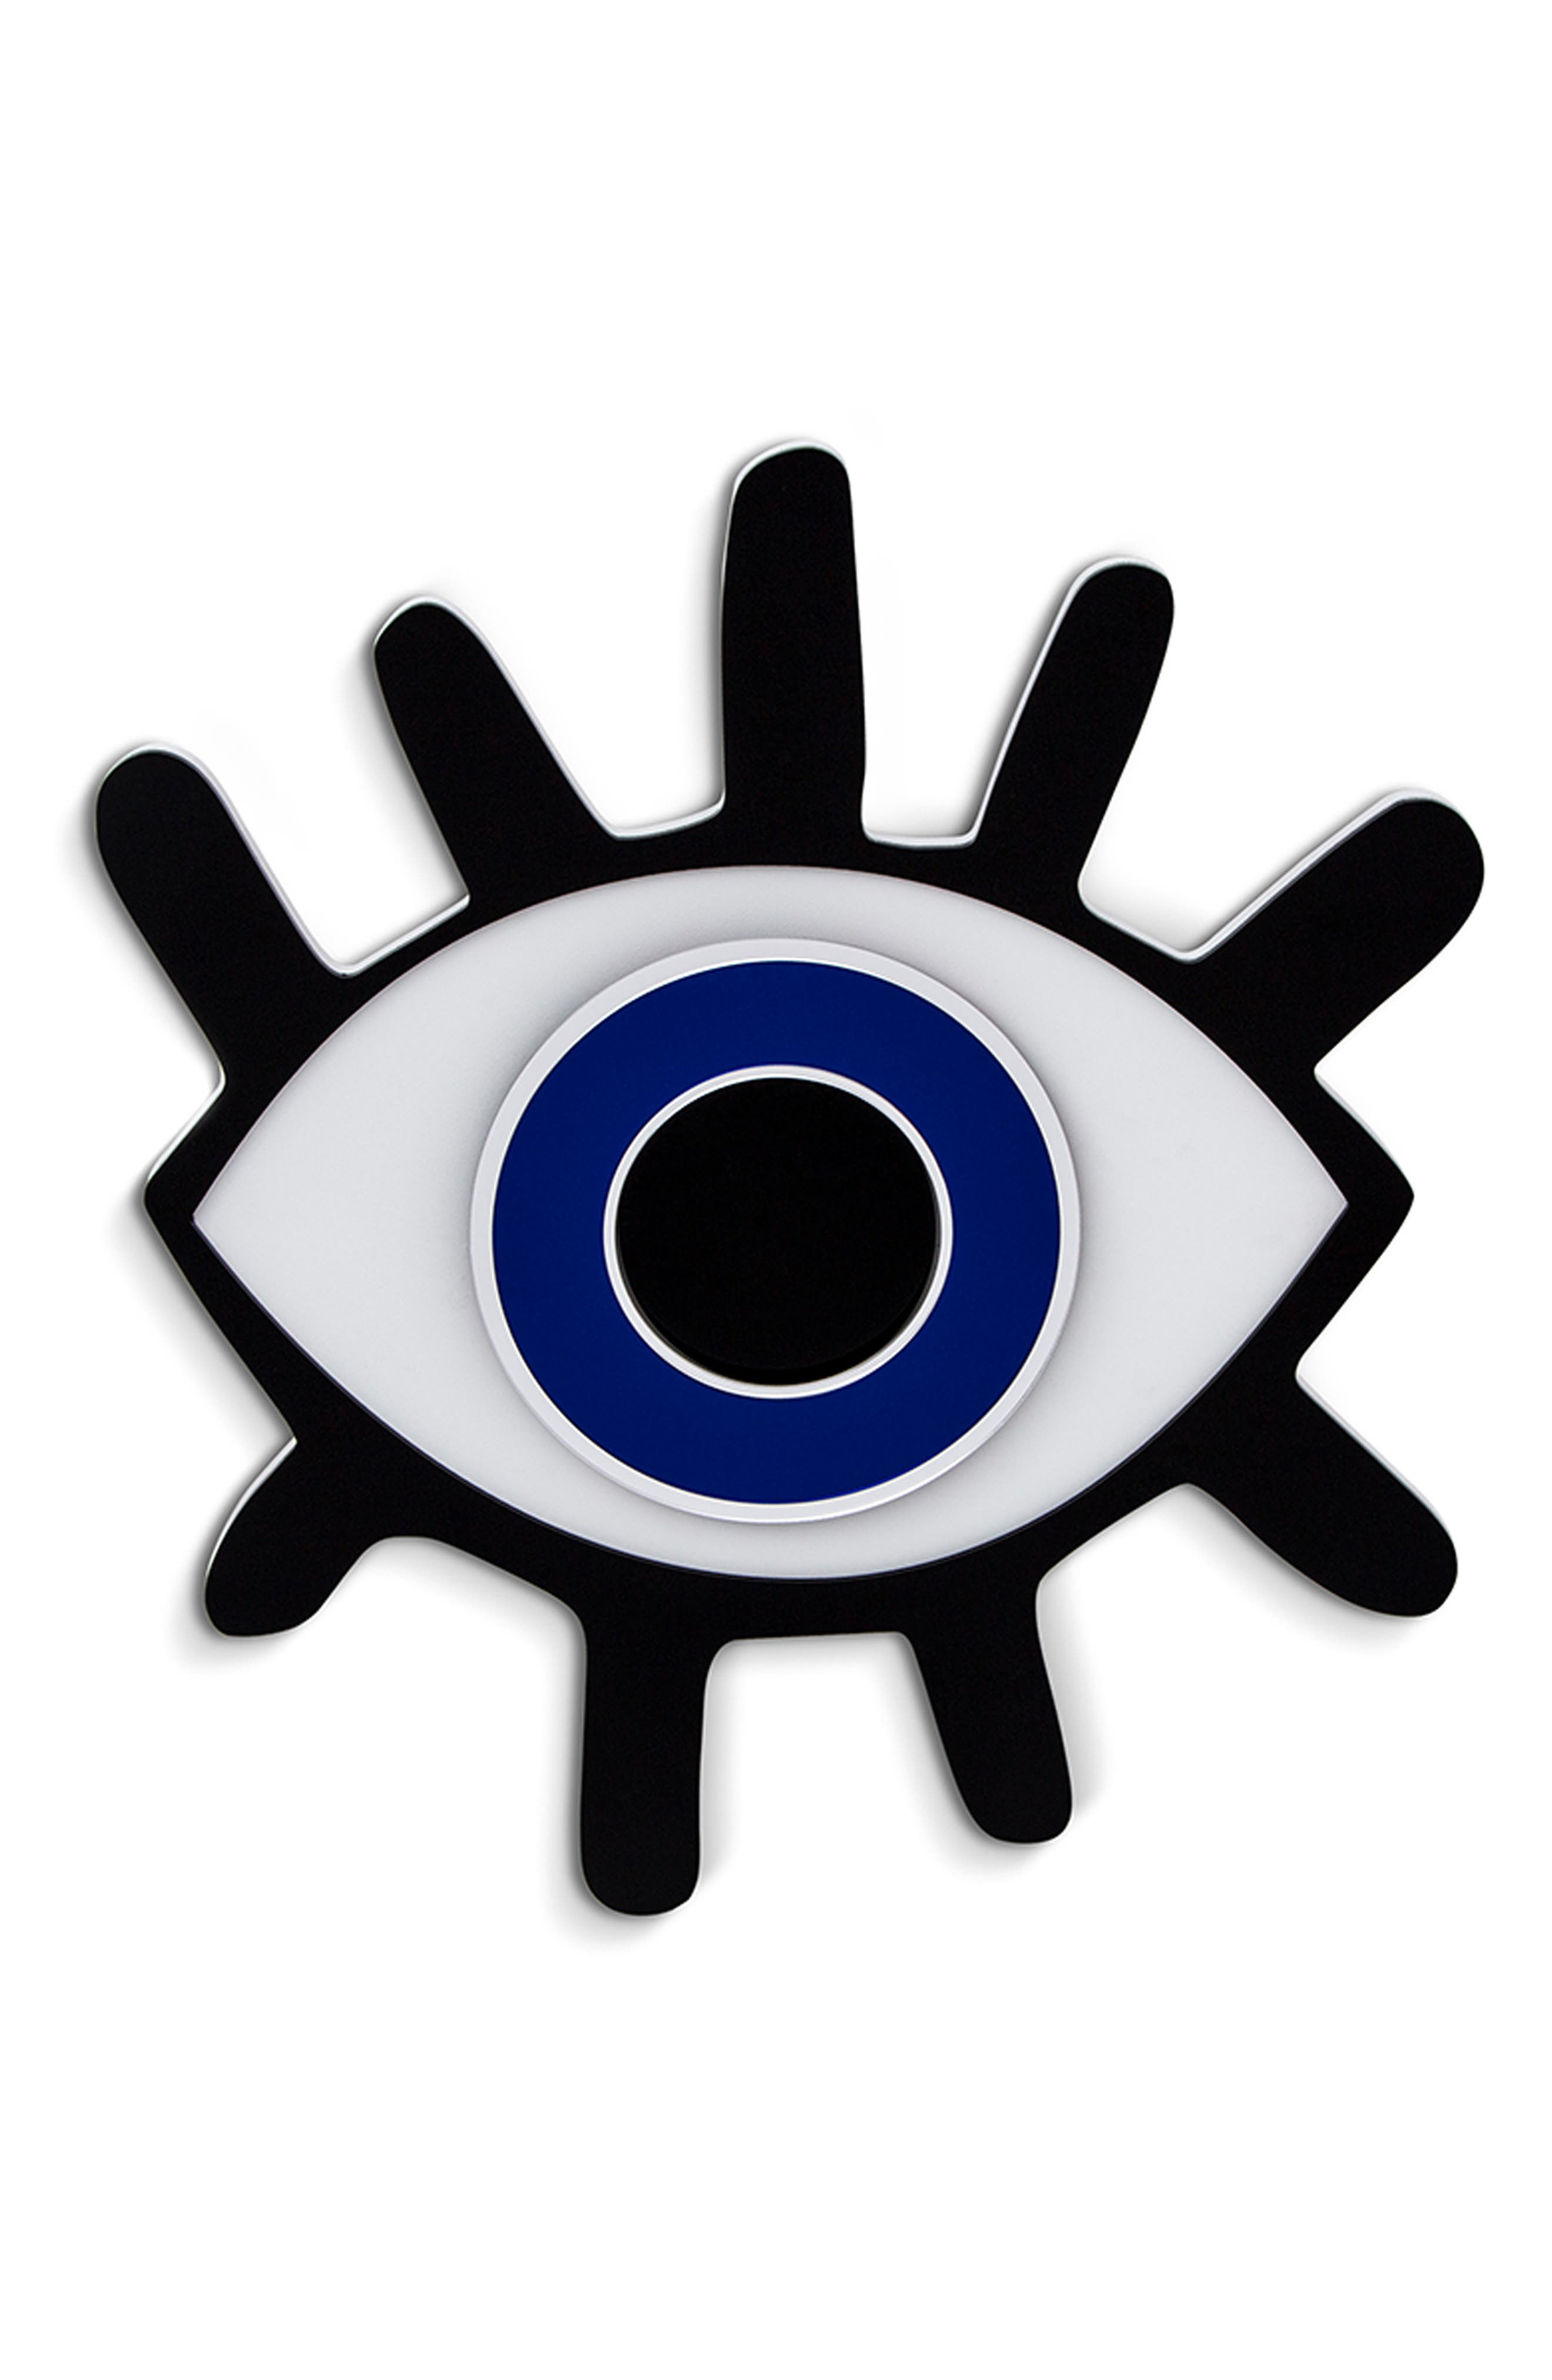 SECTIS DESIGN Lashed Evil Eye Wall Art, Main, color, BLUE BLACK AND WHITE